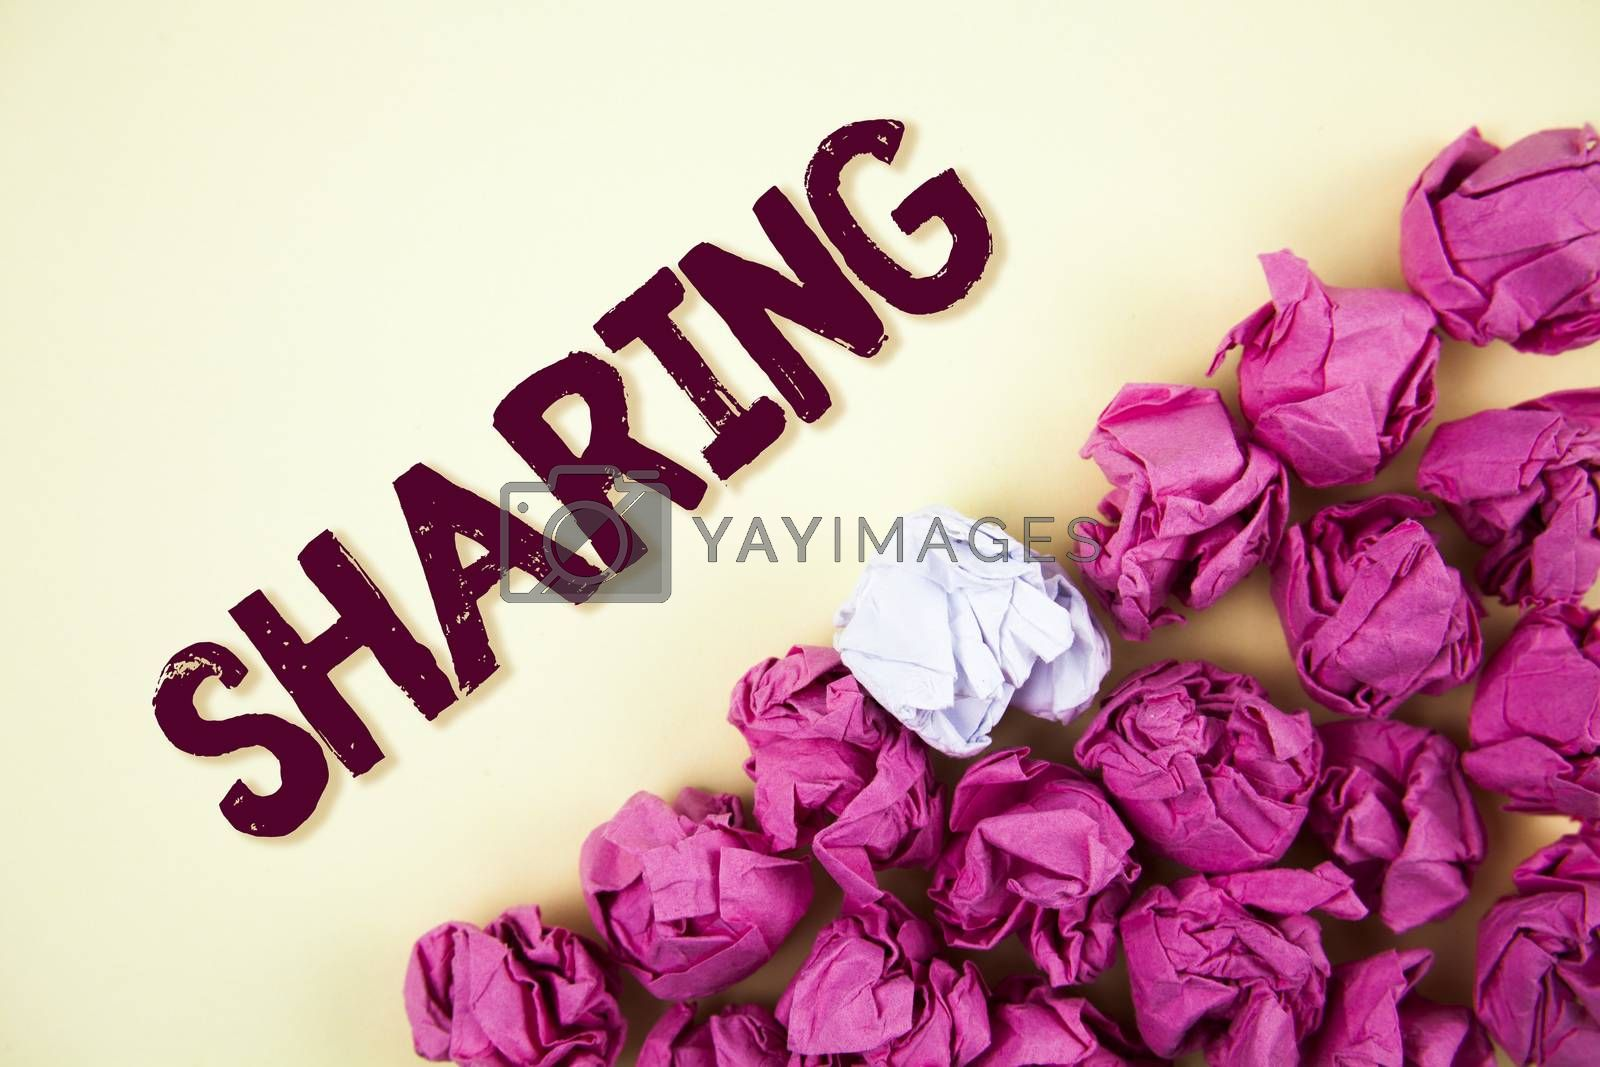 Text sign showing Sharing. Conceptual photo To Share Give a portion of something to another Possess in common written Plain background Crumpled Paper Balls next to it.